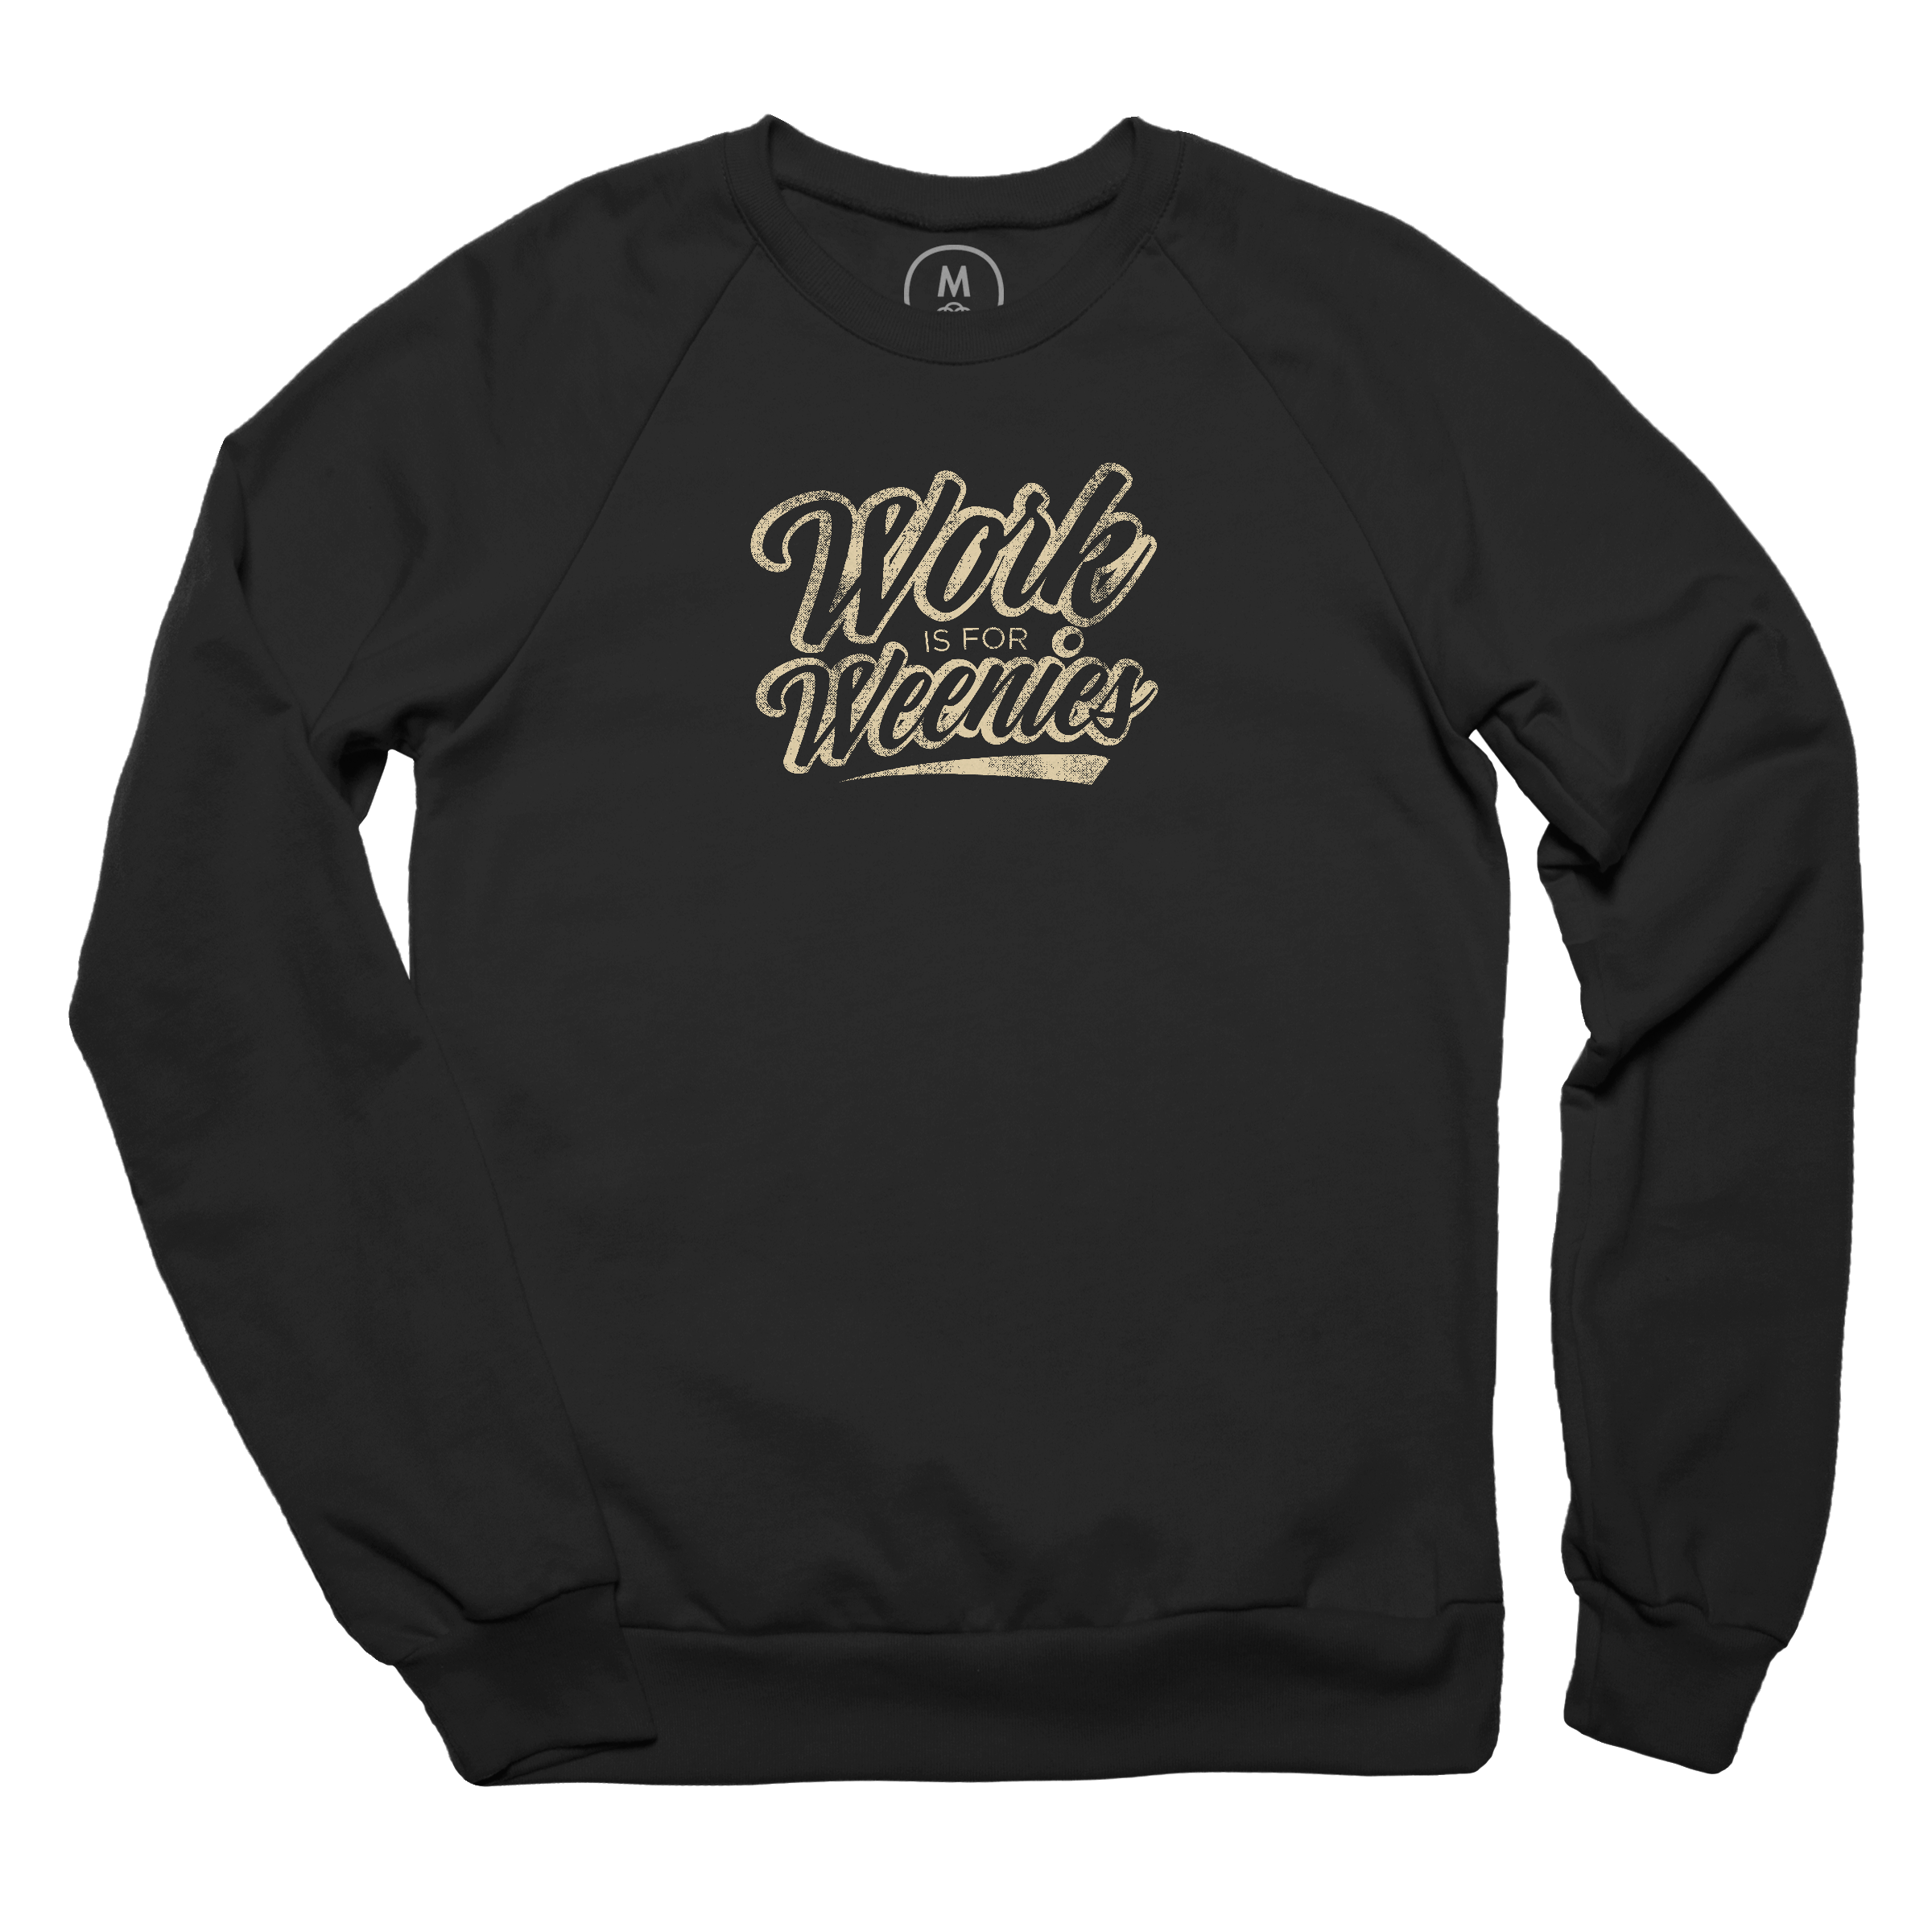 Shirt for the Weekend Pullover Crewneck